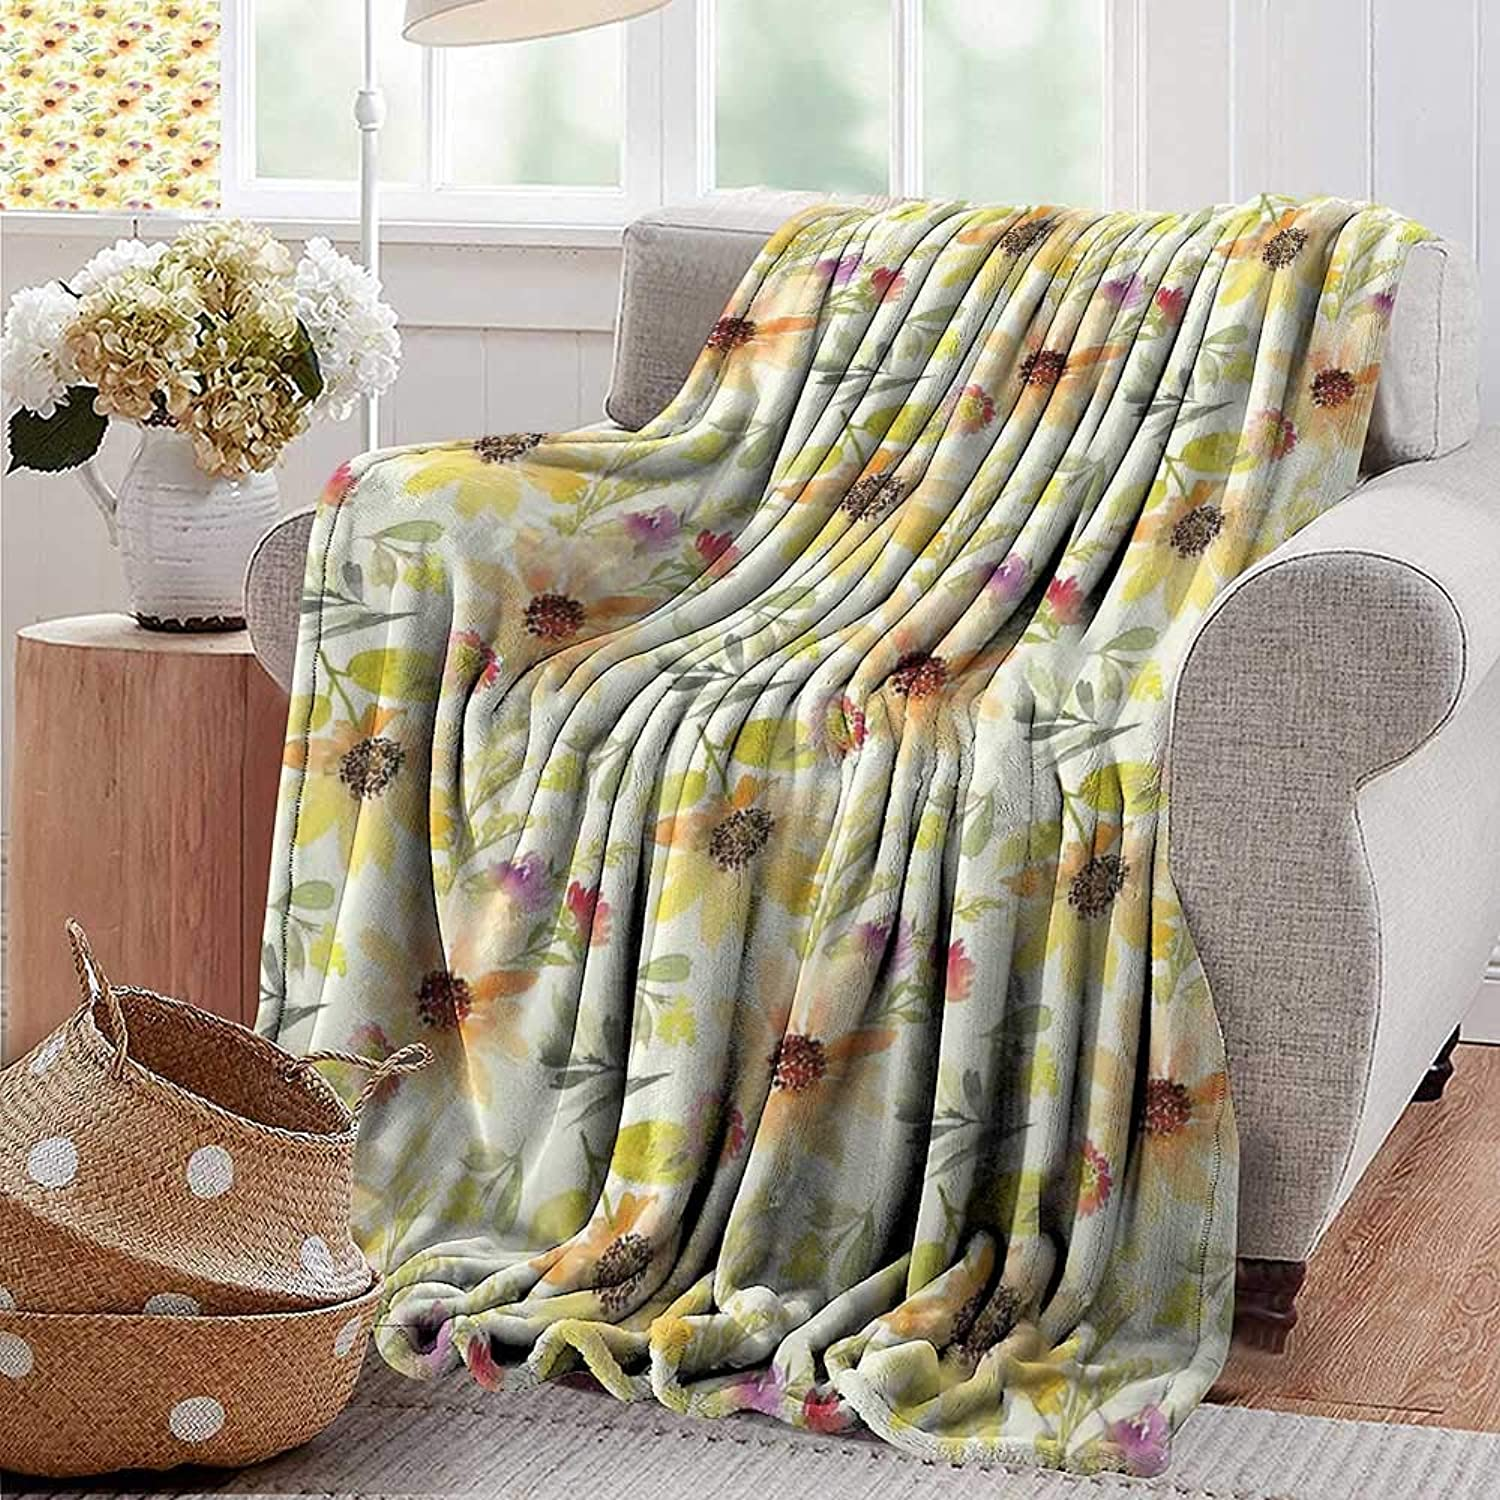 PearlRolan Weighted Blanket,Watercolor Flower,Pastel colord Summer Sunflowers with Pale Leaves Nature Style,orange Cream Green,Indoor Outdoor, Comfortable for All Seasons 35 x60